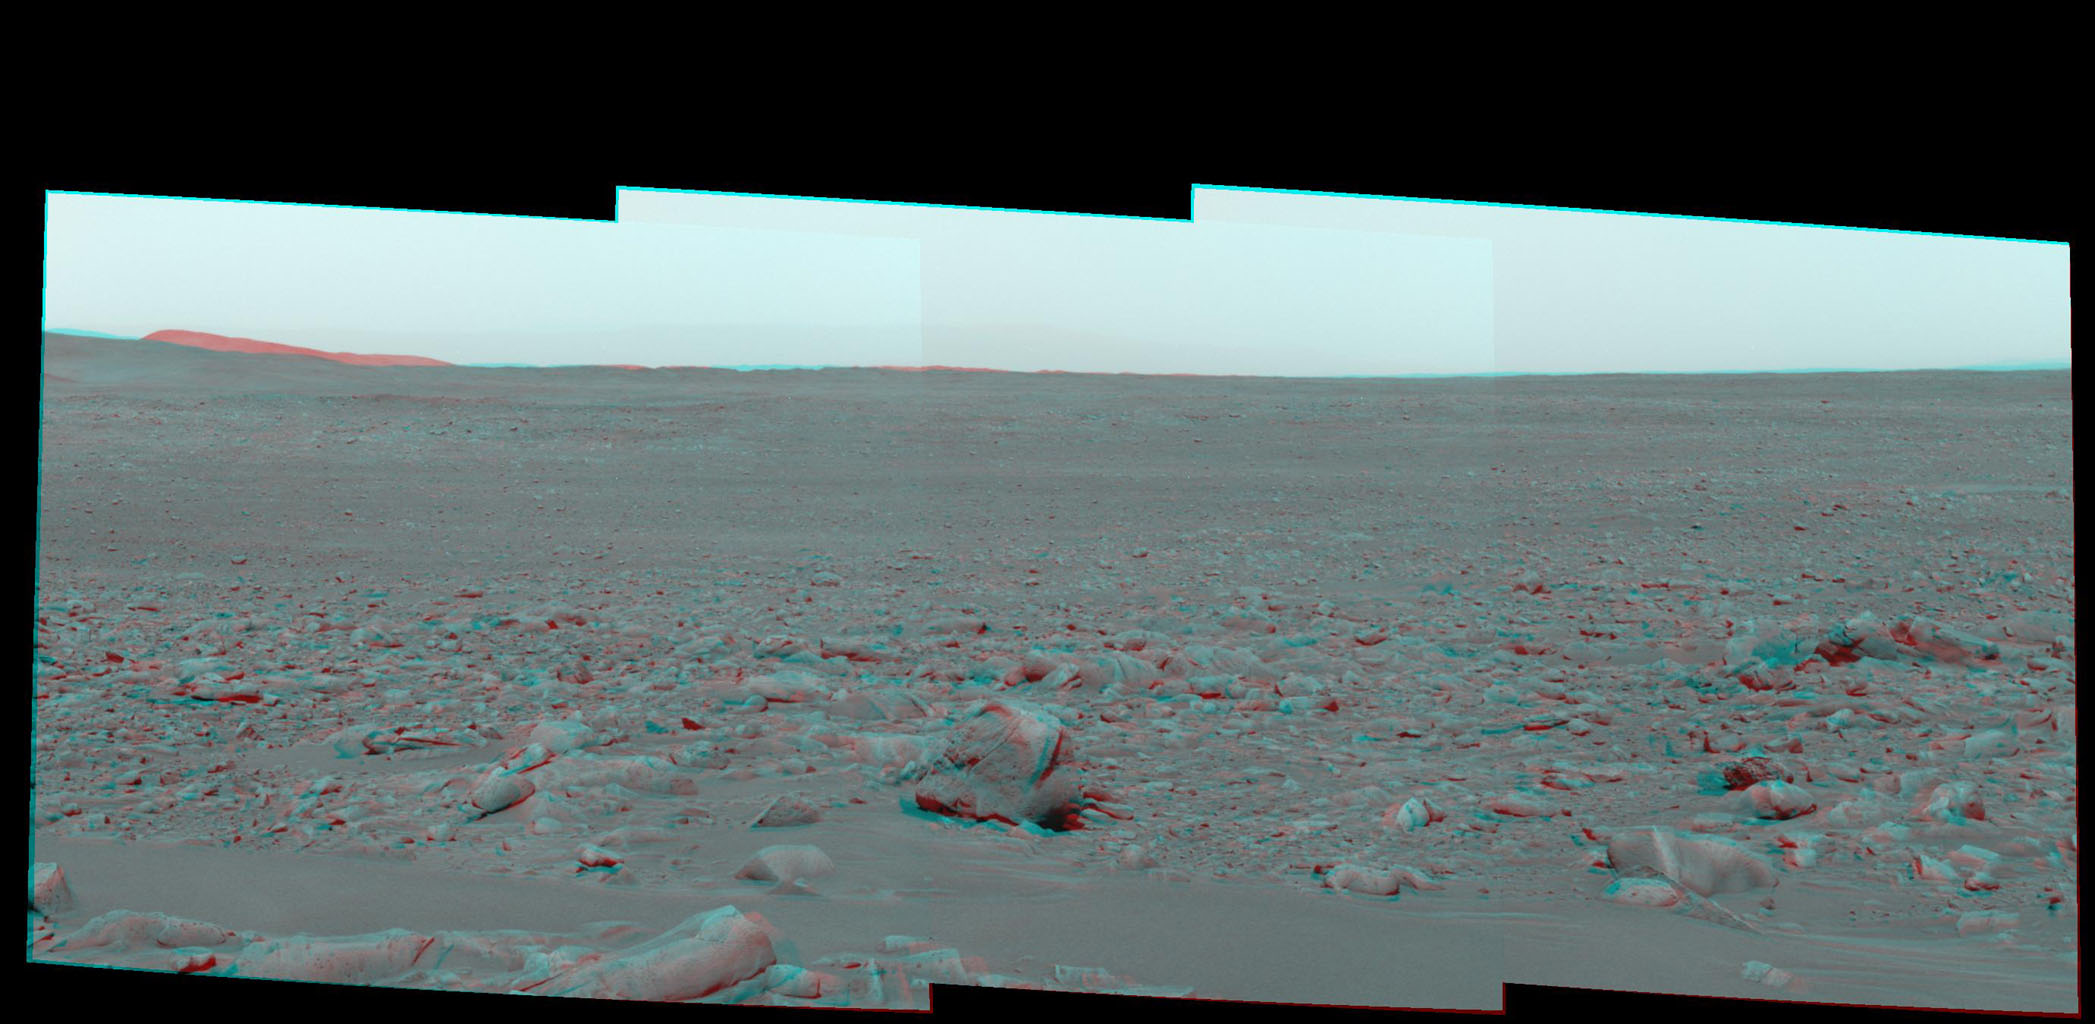 This stereo view is from NASA's Mars Exploration Rover Spirit as it was investigating a rock called 'Mazatzal' on the rim of 'Bonneville Crater.' 3D glasses are necessary to view this image.